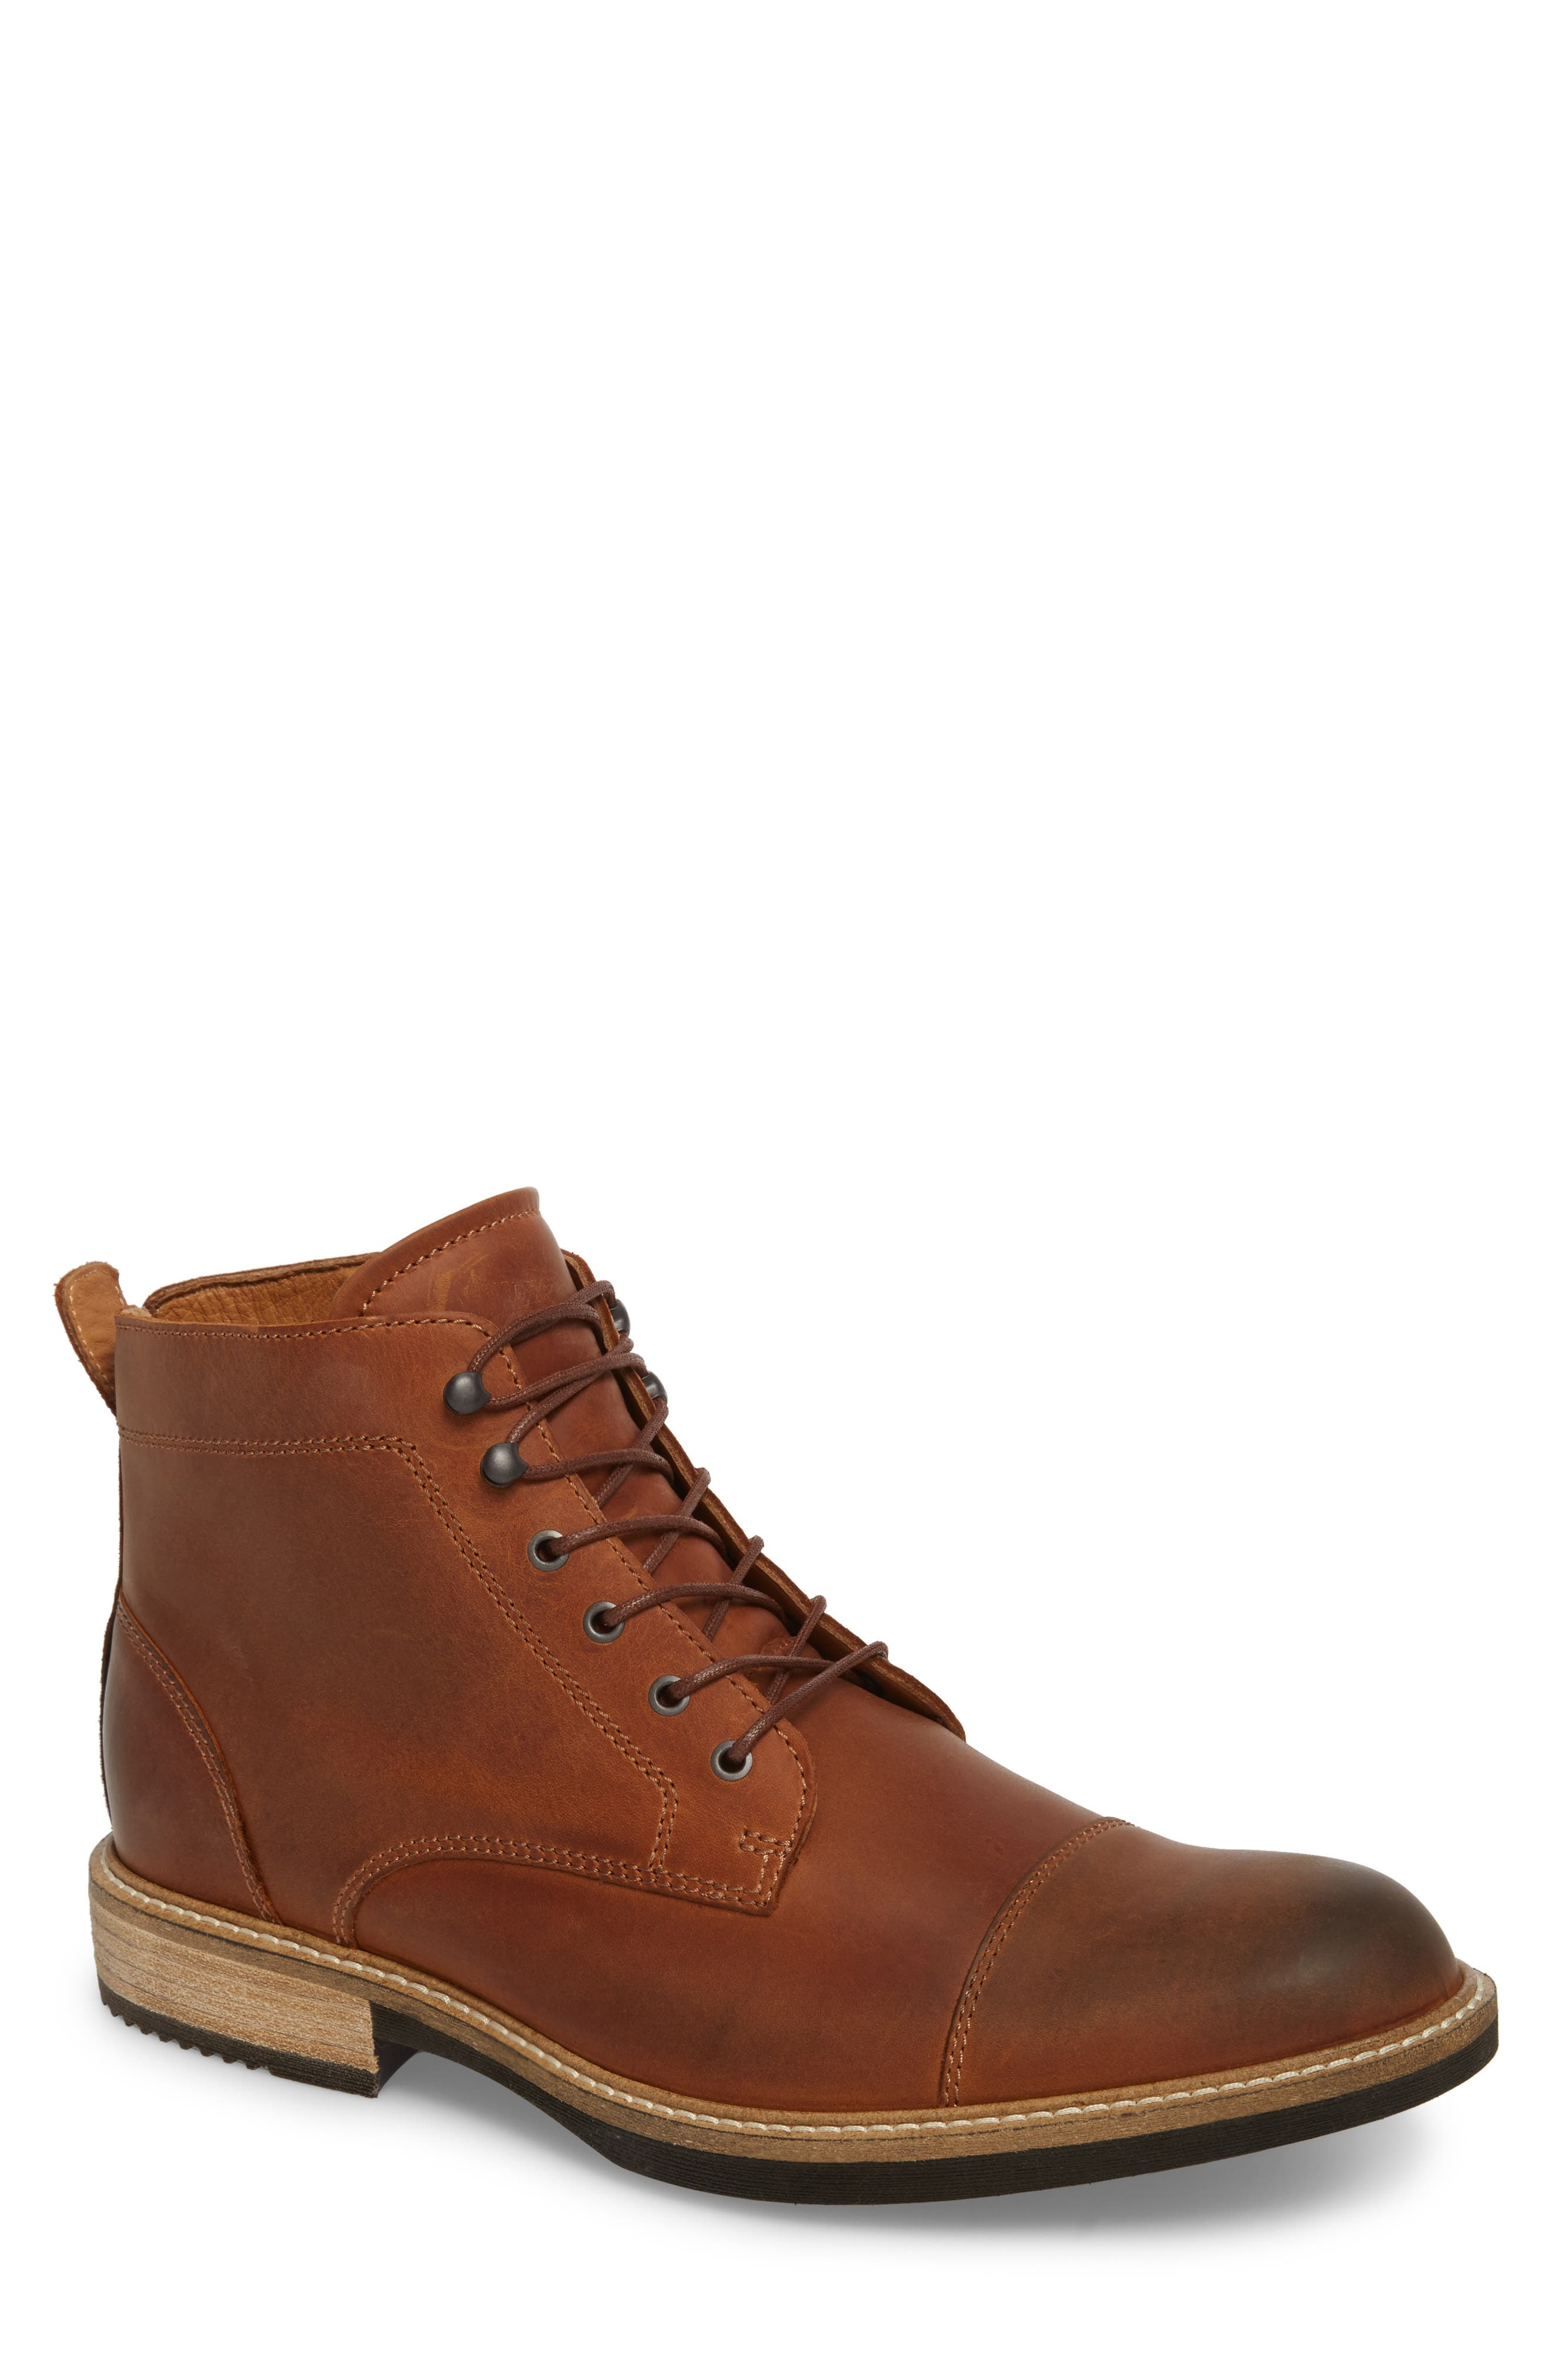 Kenton Vintage Cap Toe Boot,                             Main thumbnail 1, color,                             Cognac Leather